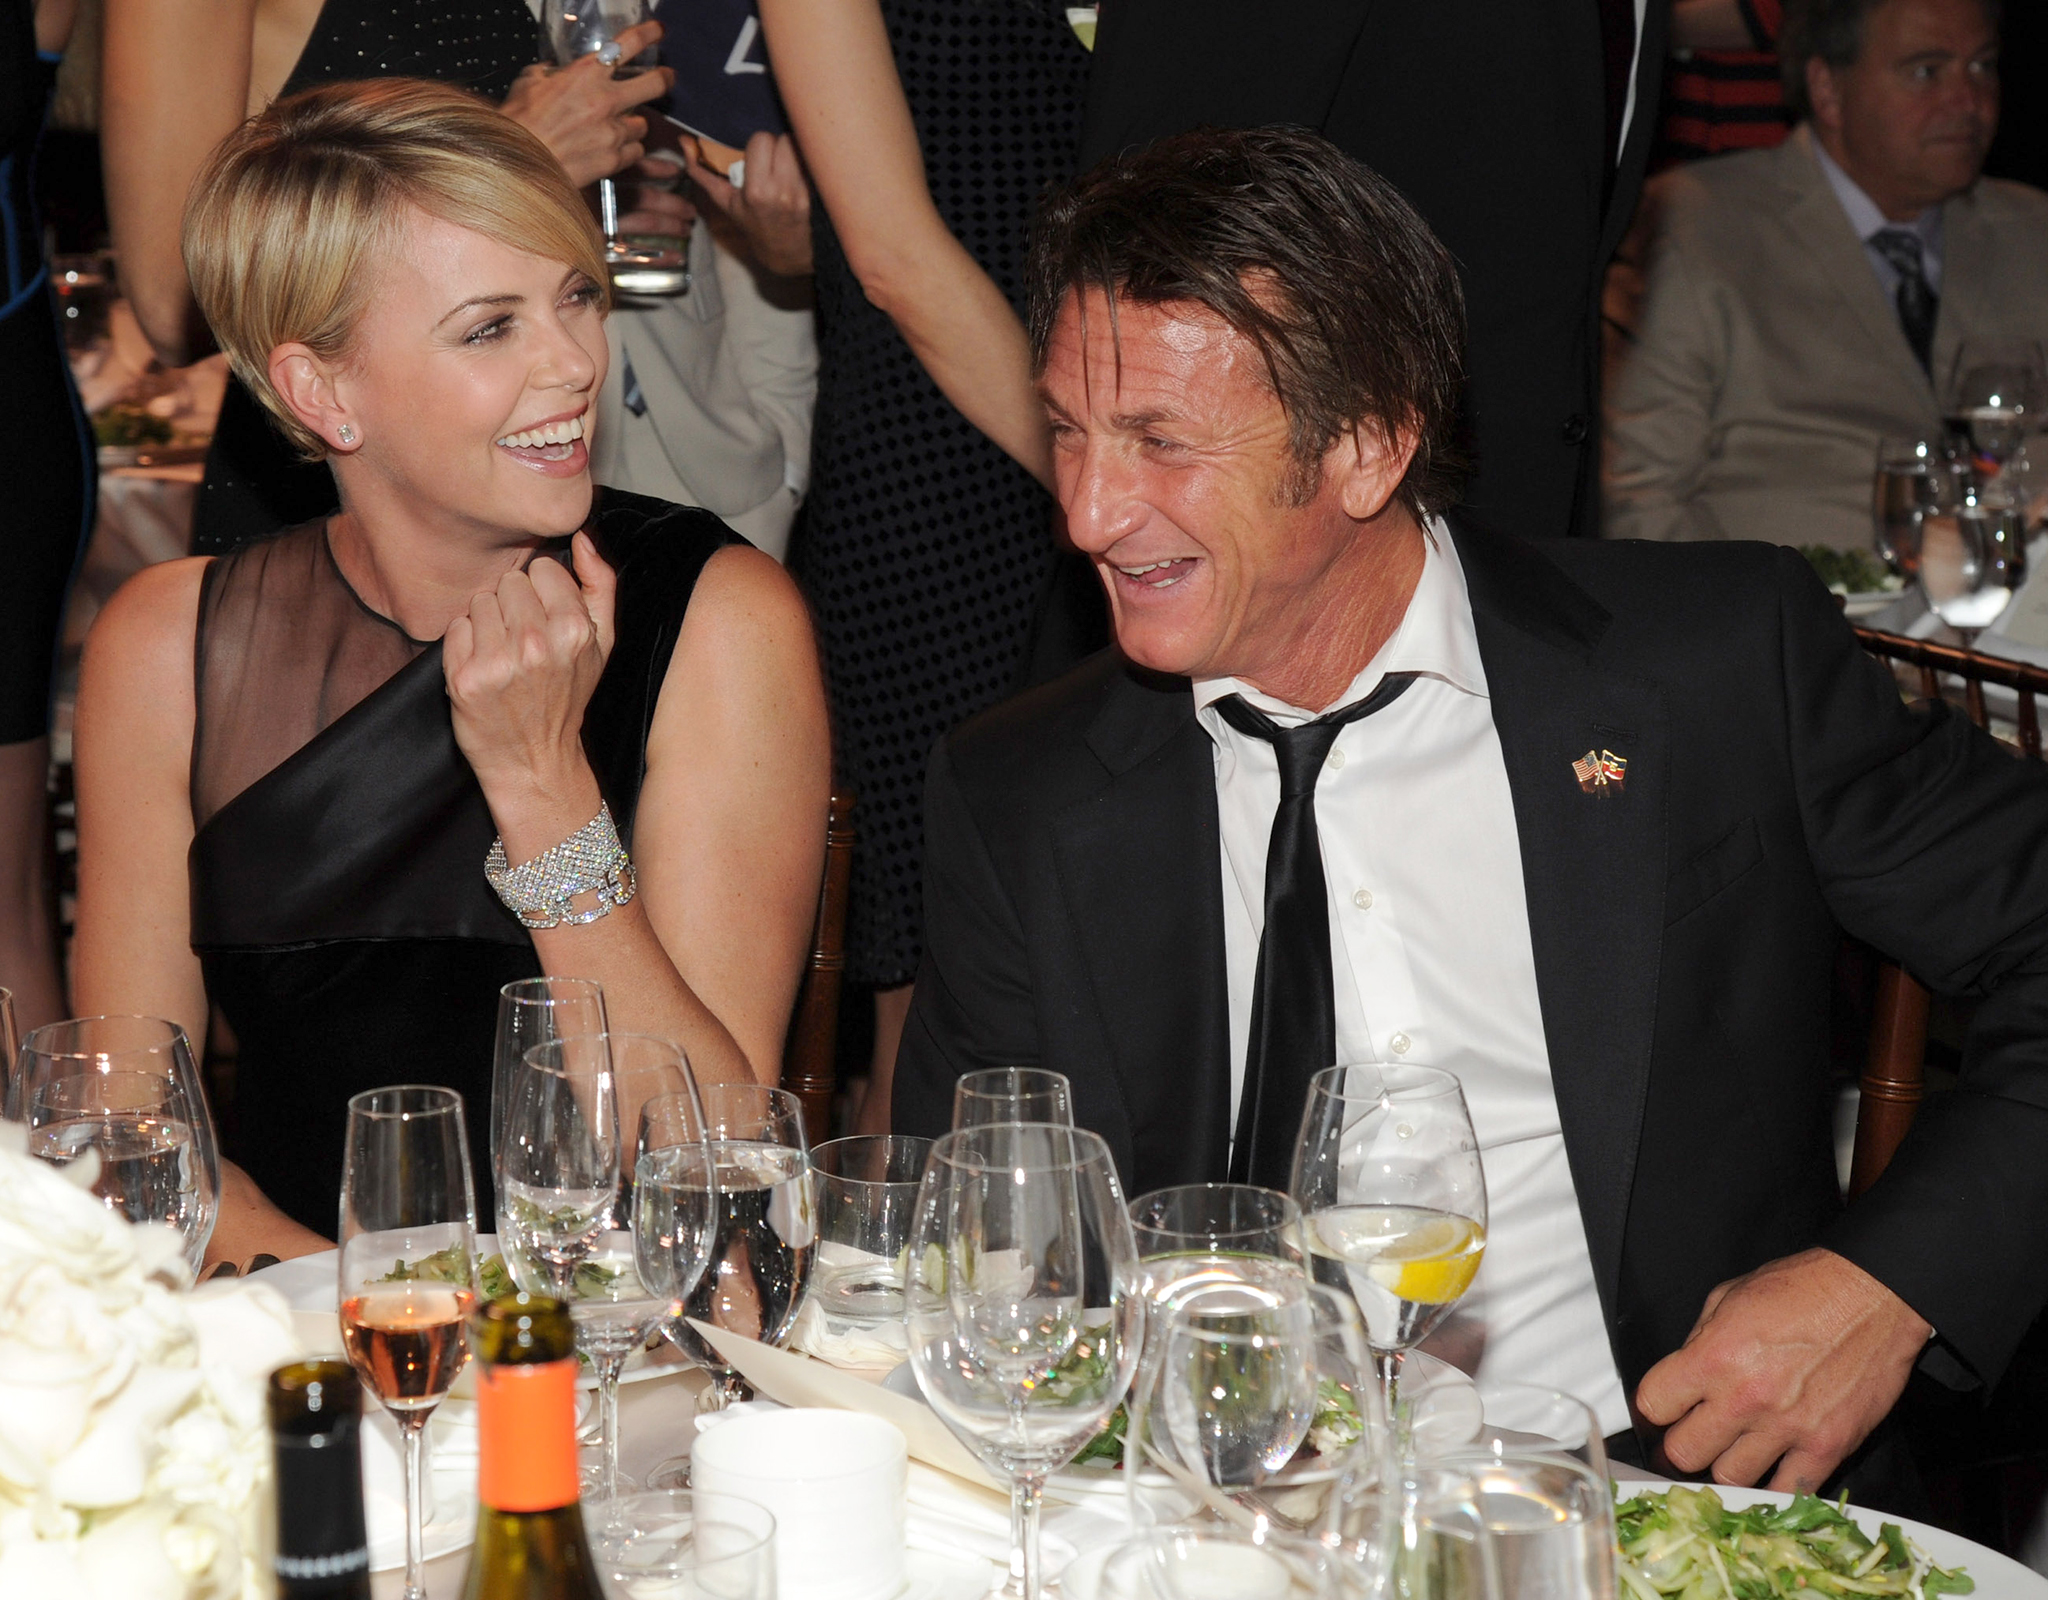 Sean Penn and Charlize Theron share a laugh together. (Getty Images)